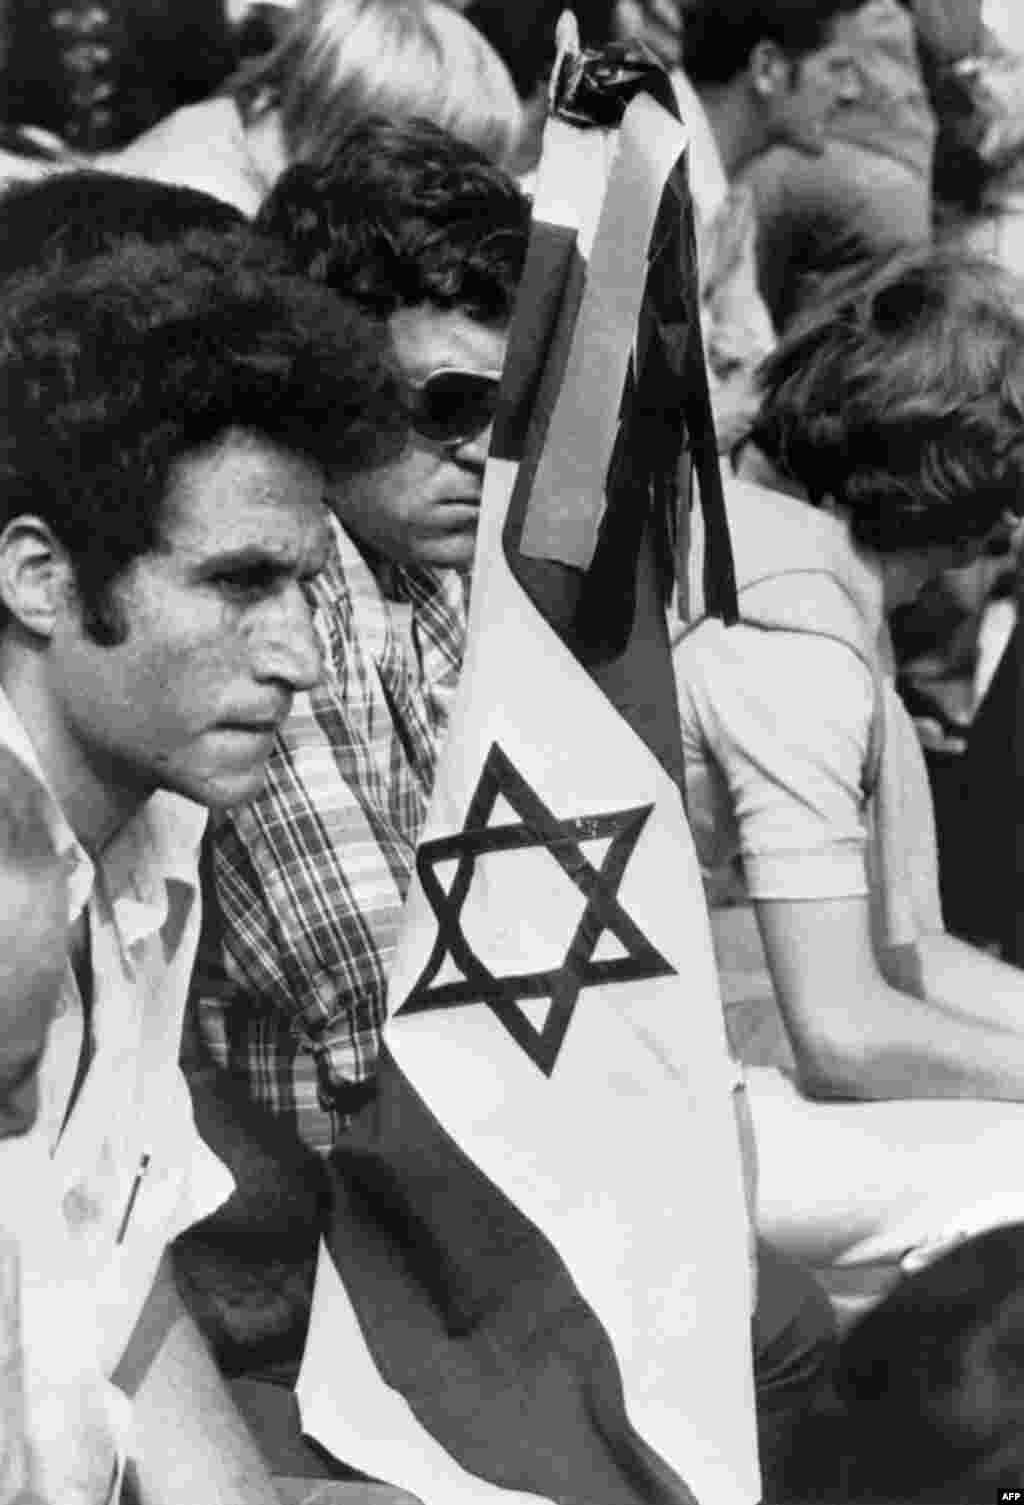 Members of the Israeli team holding an Israeli flag mourn during a memorial ceremony held at Olympic Stadium on September 6, 1972.